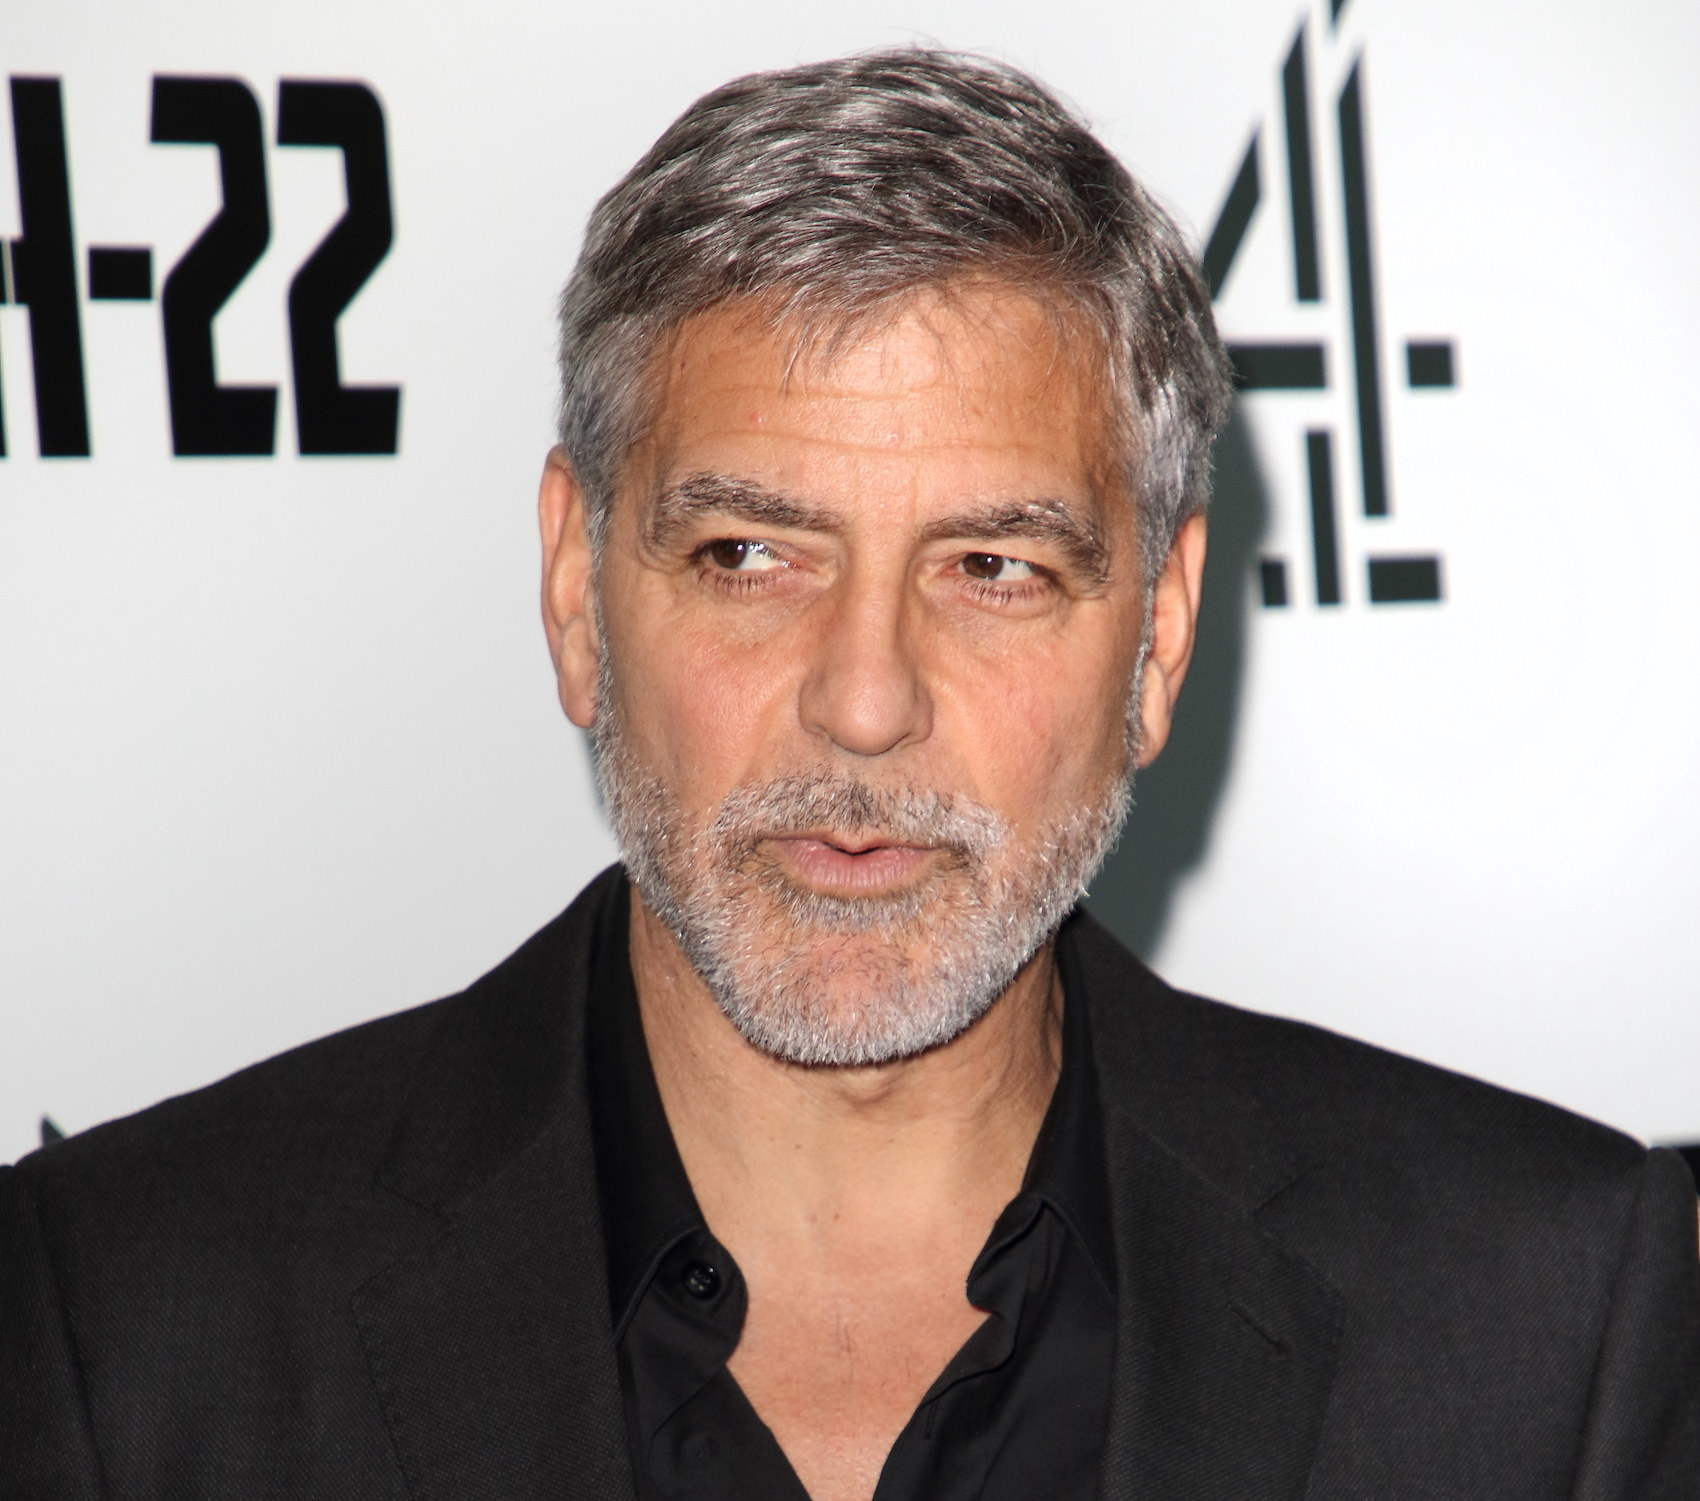 George Clooney attends the Catch 22 - TV Series premiere